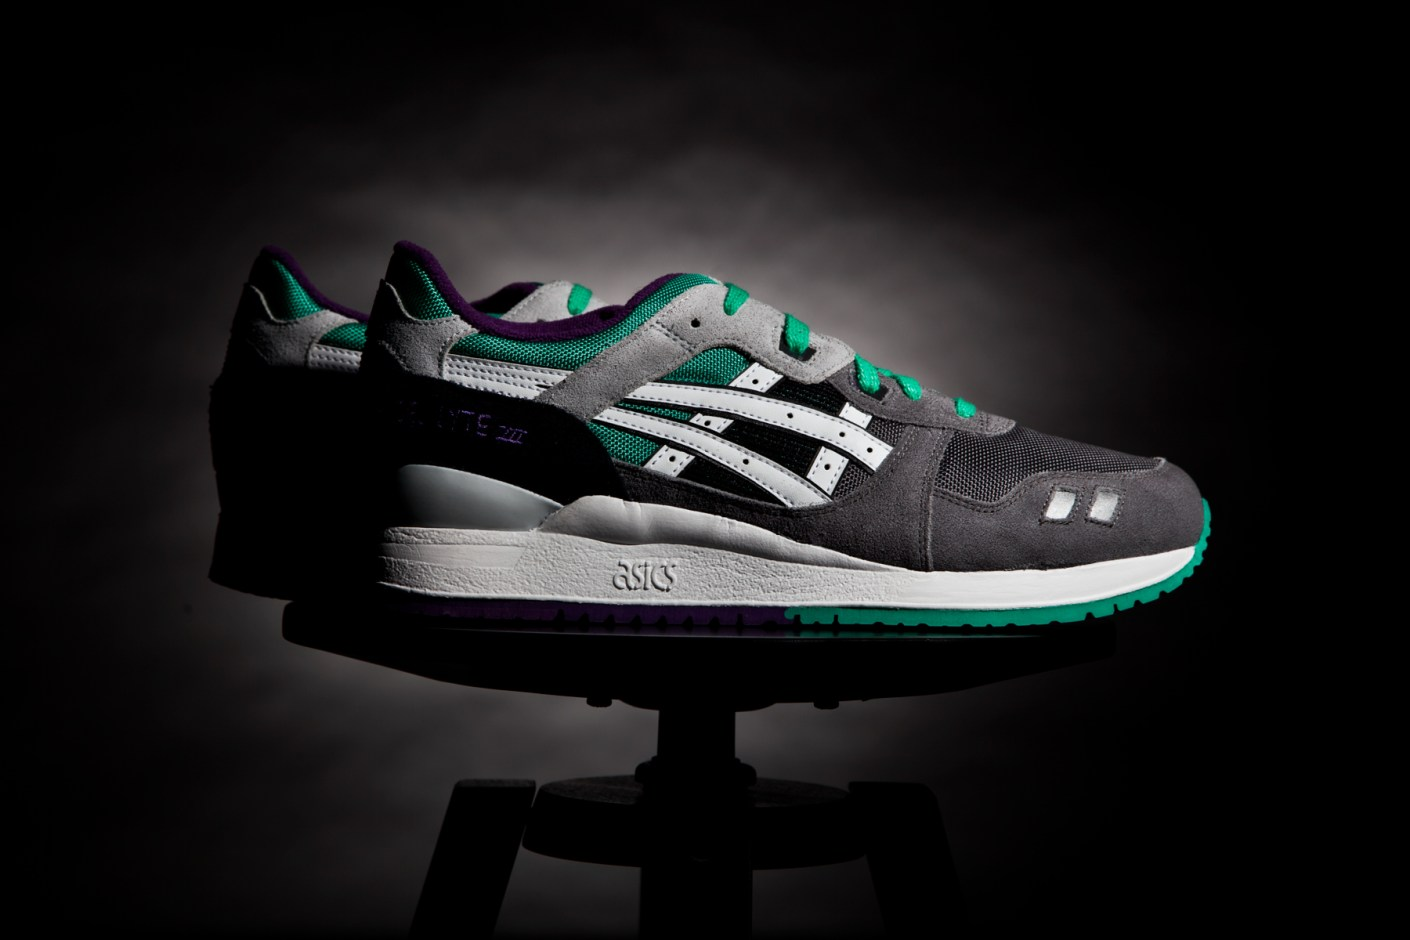 Image of ASICS 2014 Spring/Summer GEL-LYTE III Sneakers